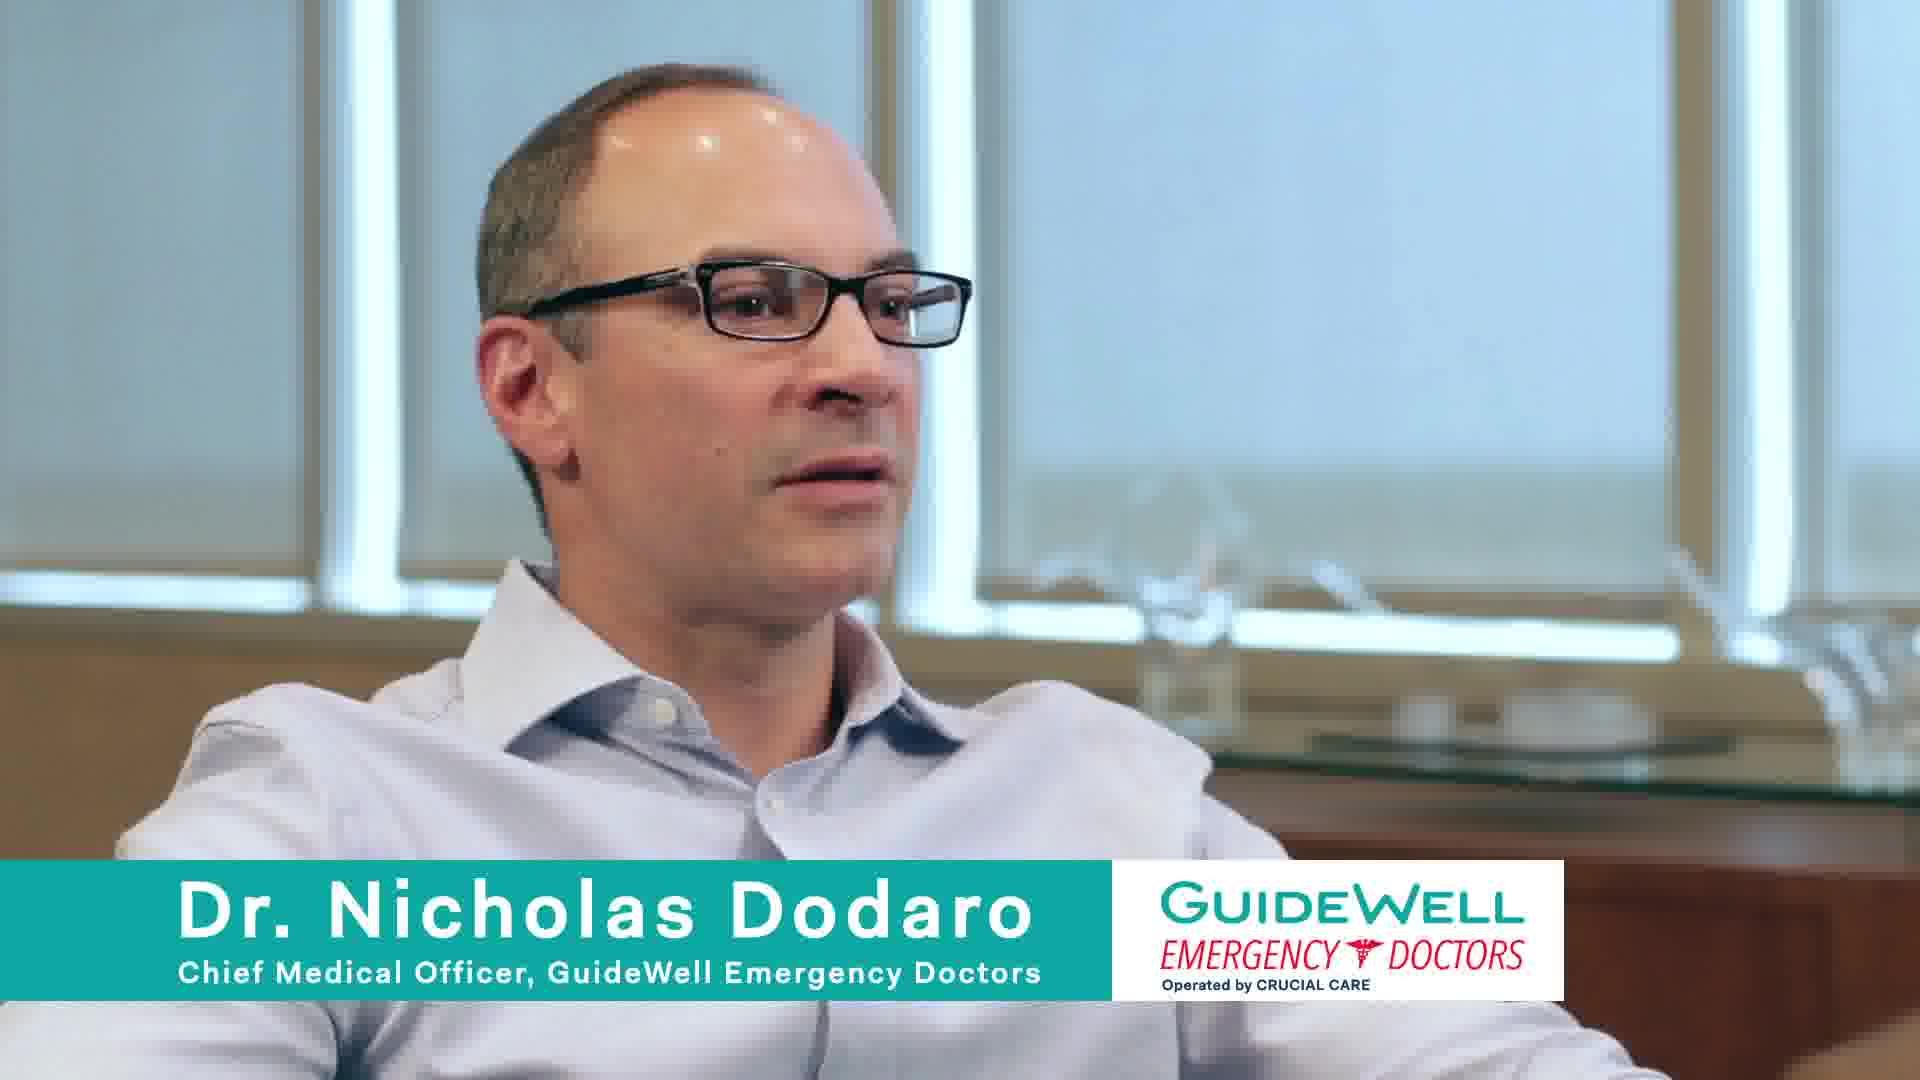 Nicholas Dodaro MD is the Chief Medical ficer for GuideWell